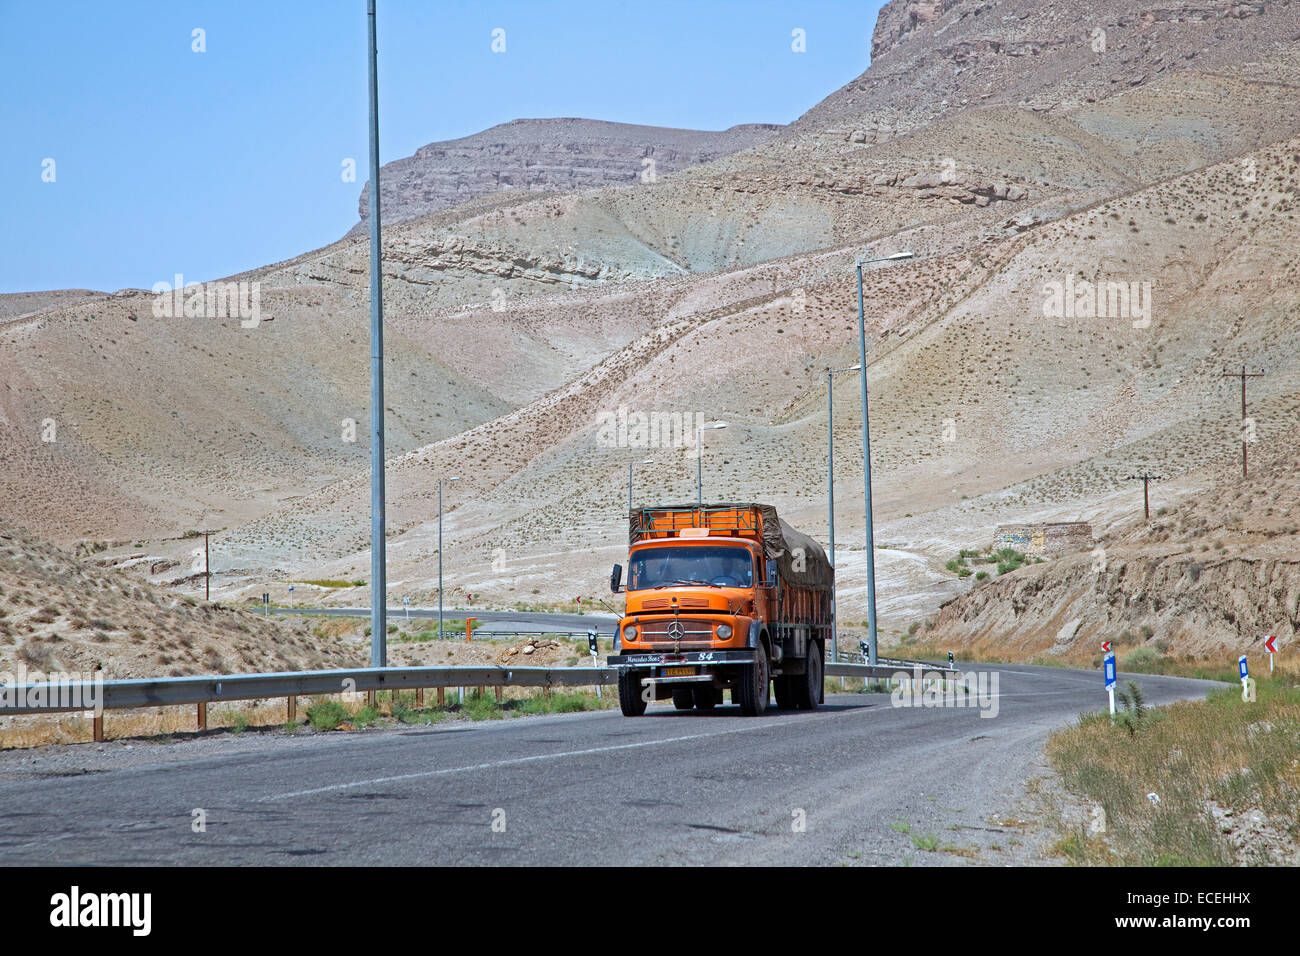 Truck on motorway from Mashhad to Turkmenistan through the Karakum Desert in Iran - Stock Image